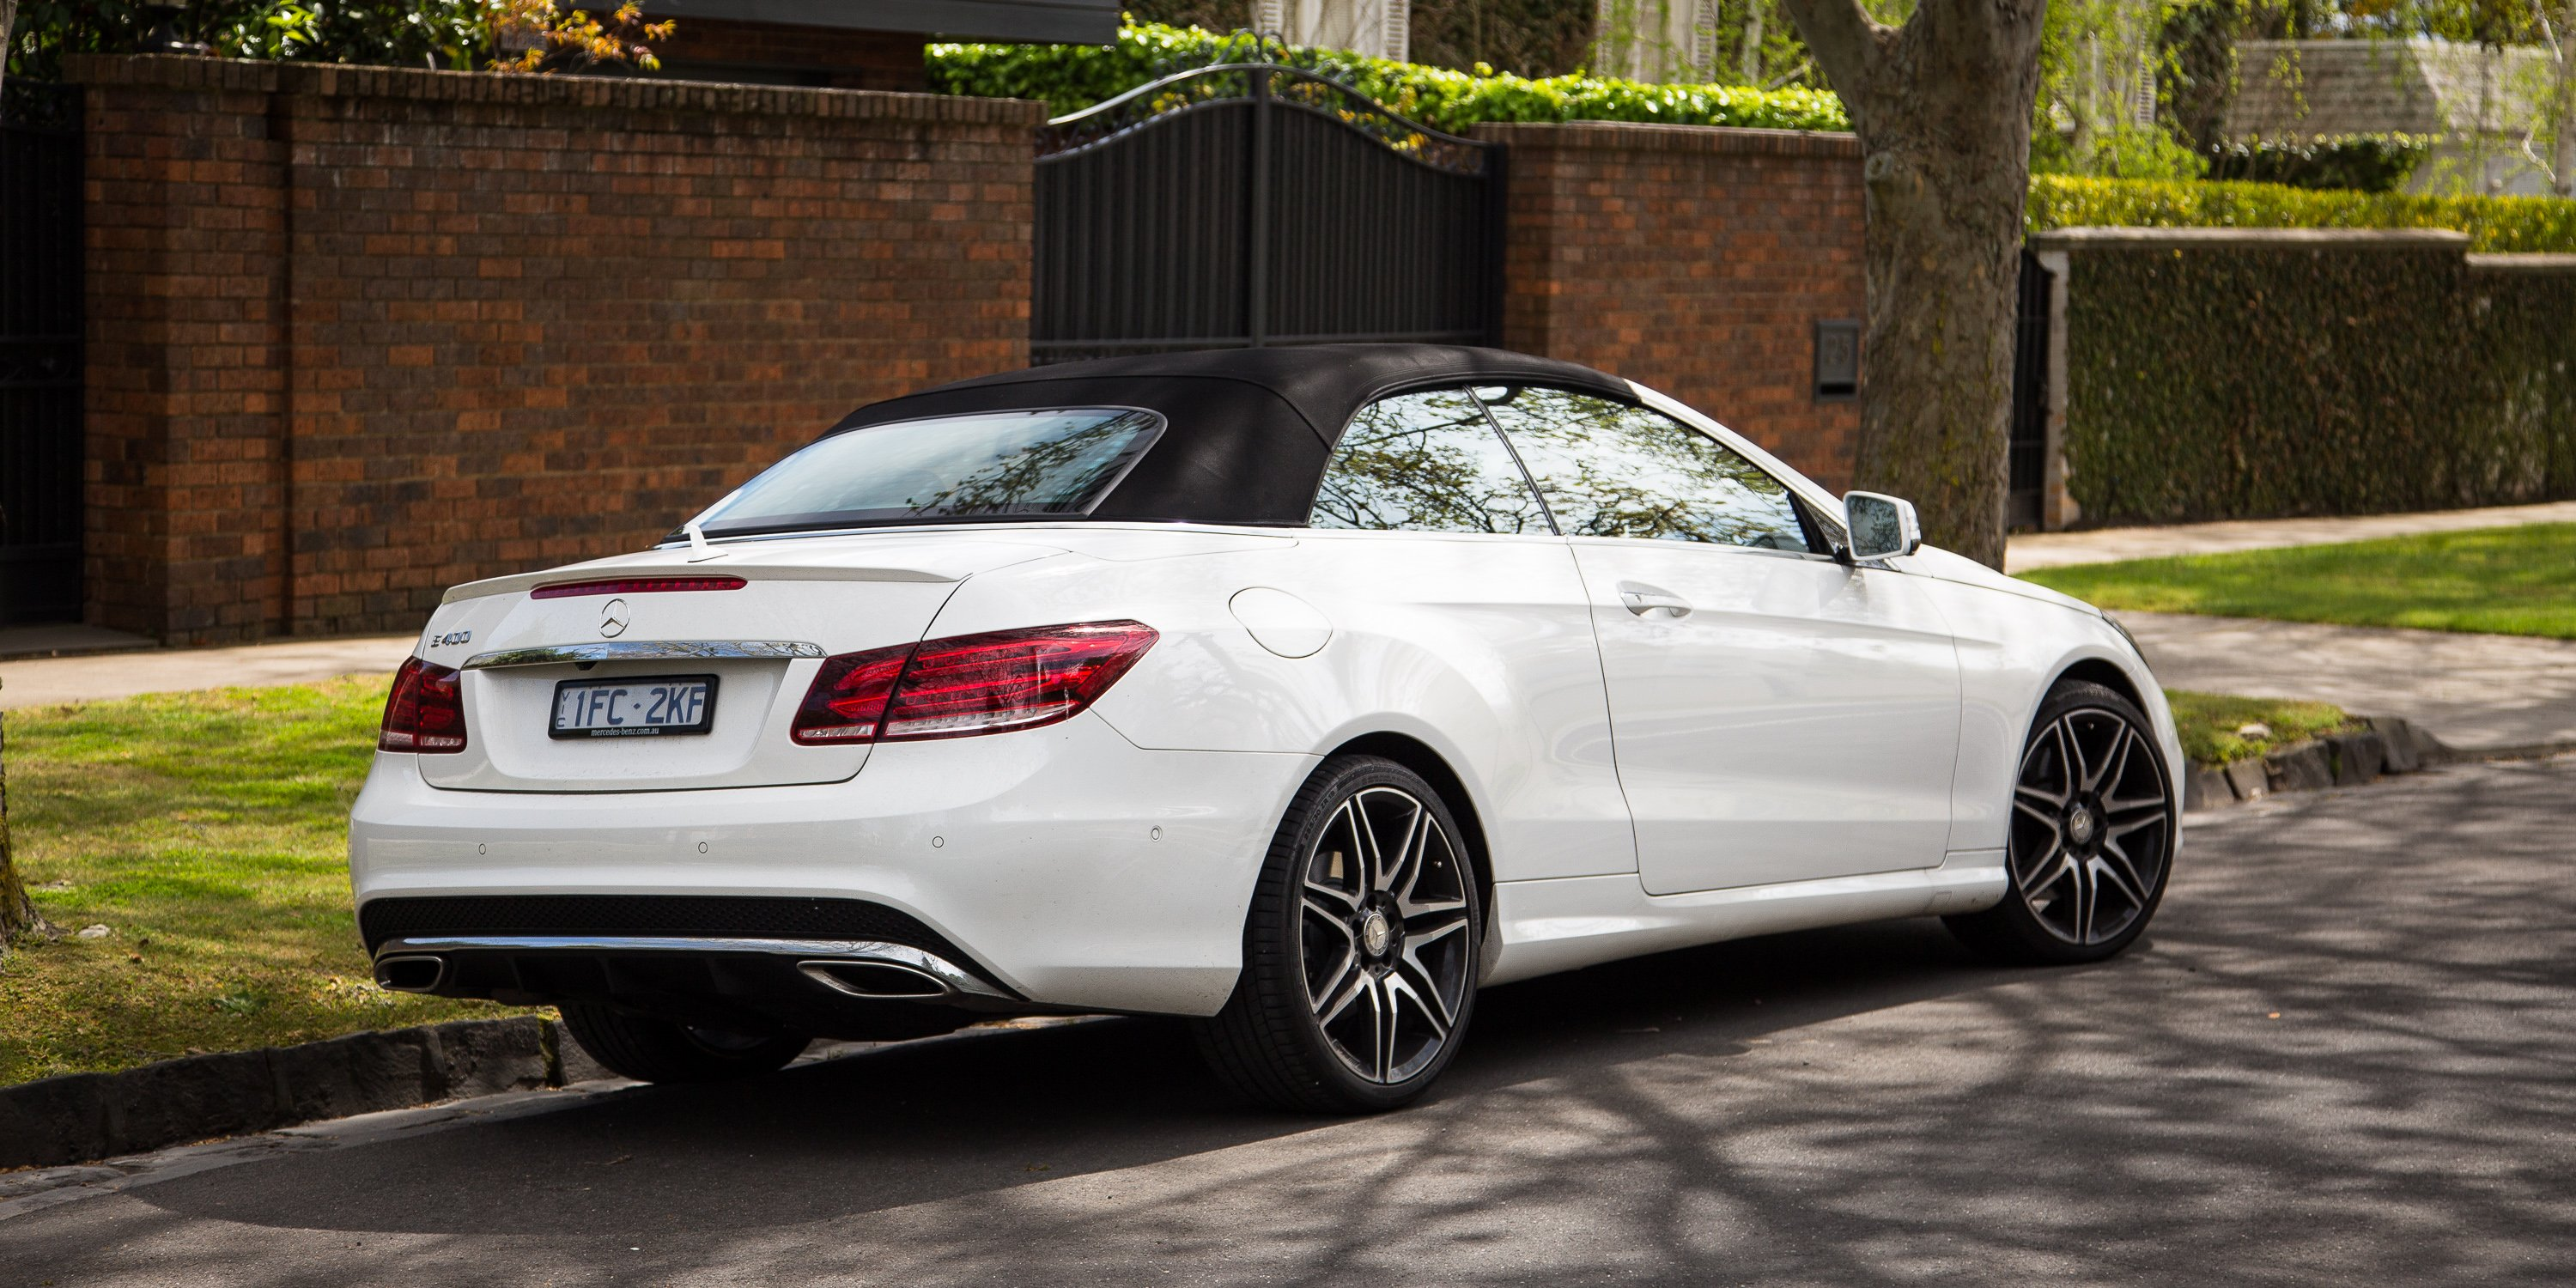 2016 mercedes benz e400 cabriolet review caradvice for Mercedes benz 350 coupe